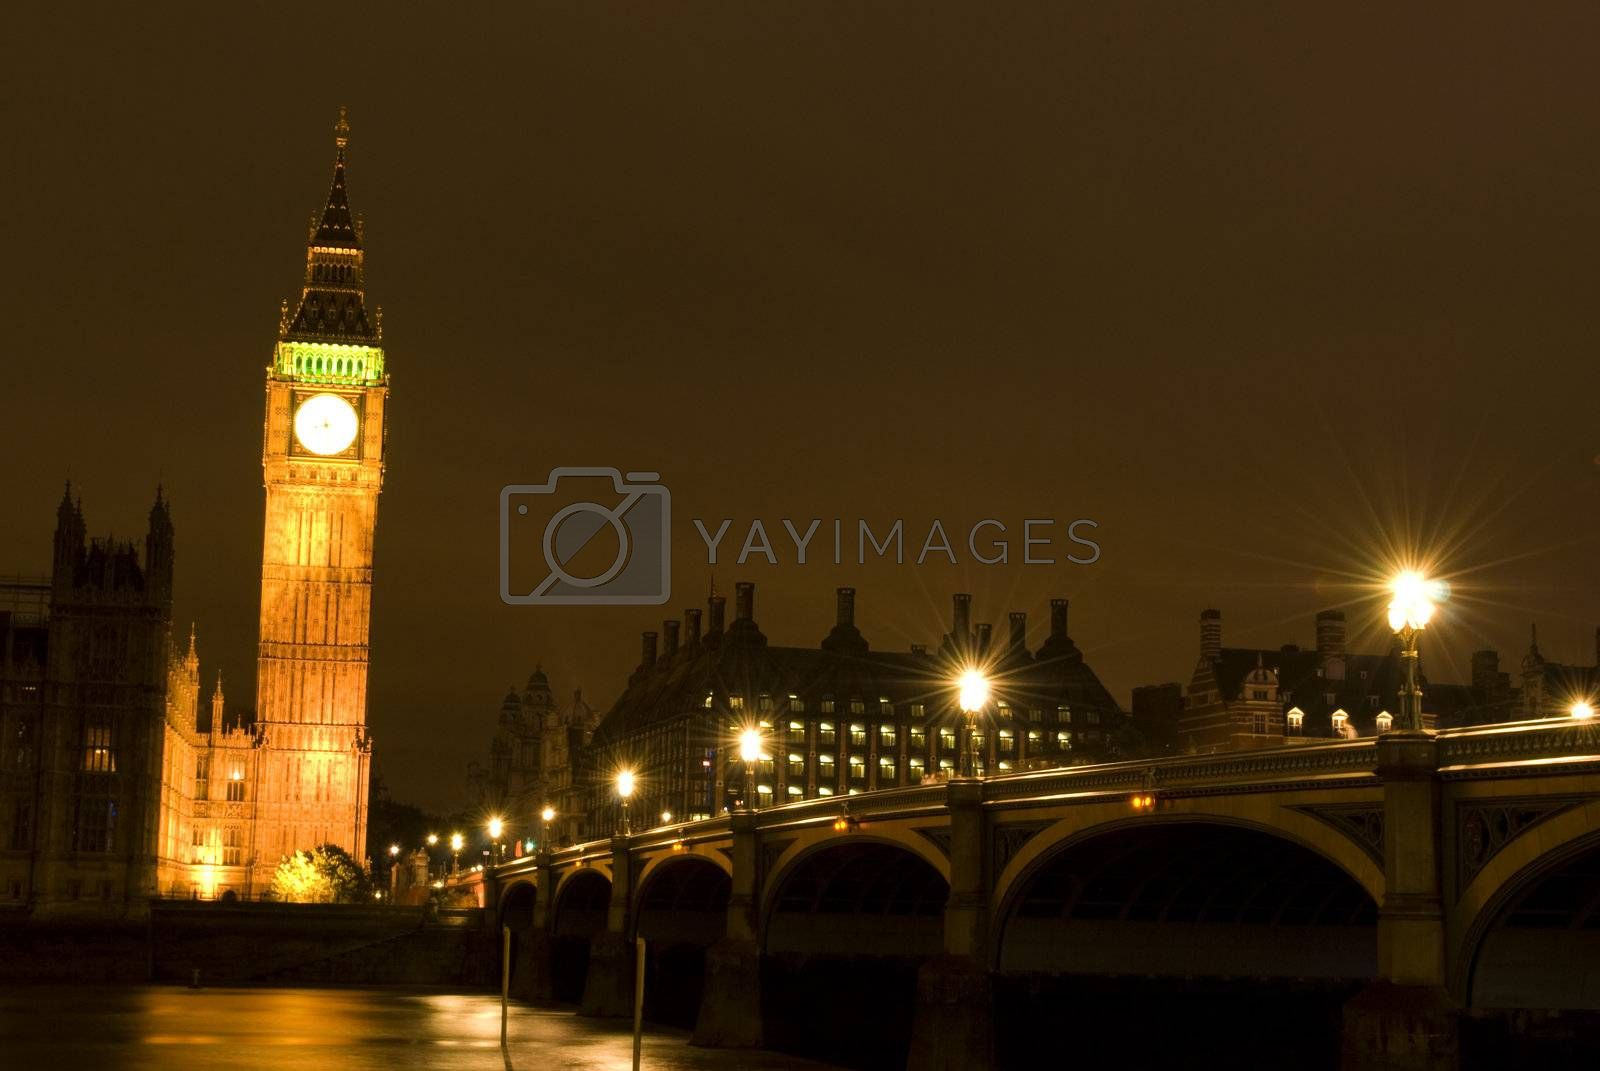 Big Ben at night London UK by Dessie_bg